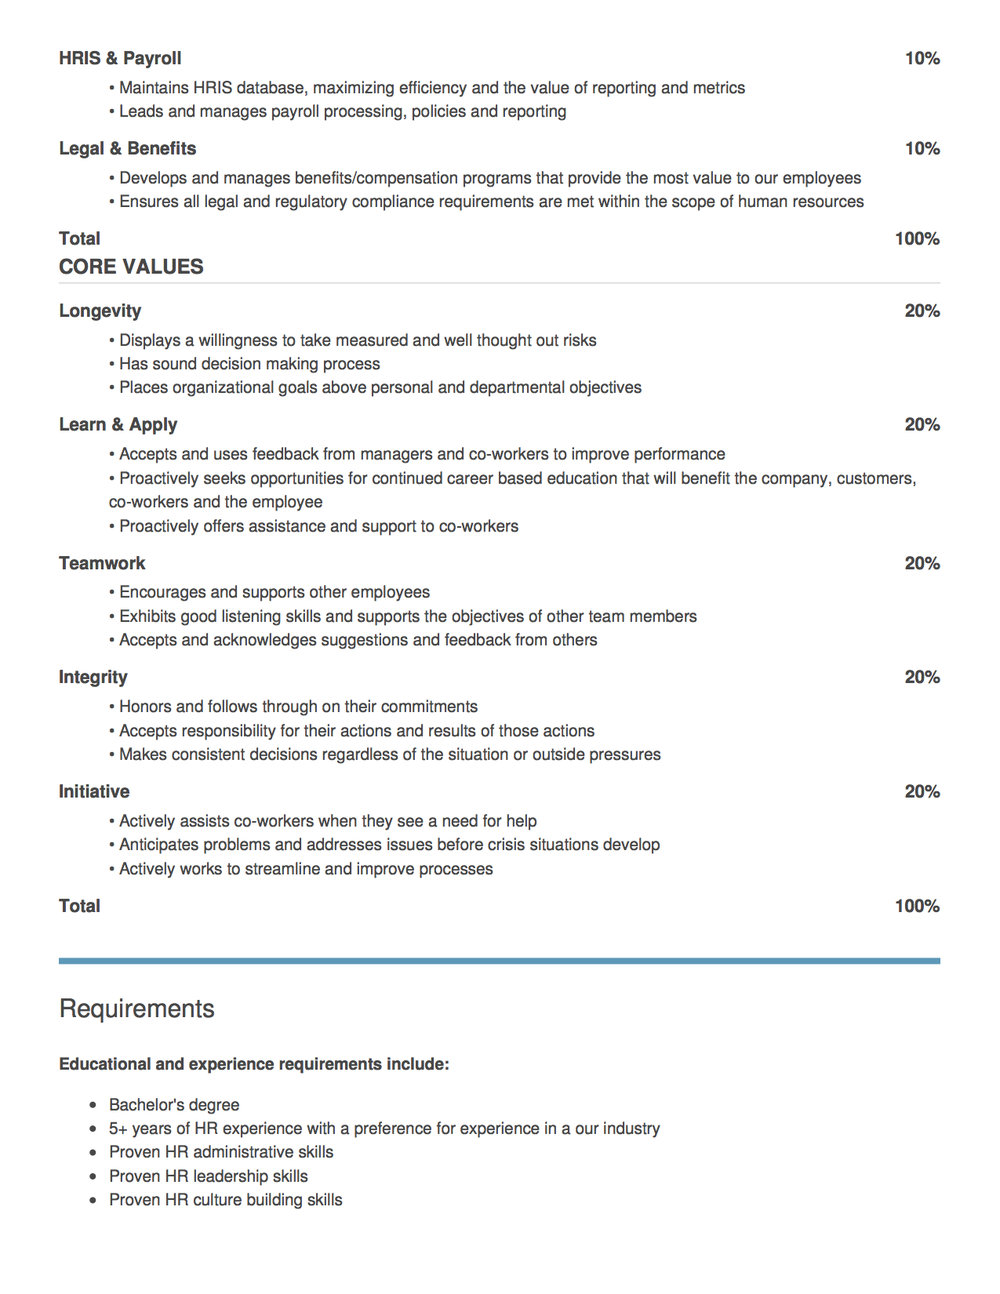 Human-Resources-Manager-Job-Description-Threads-Culture-page-2.jpg